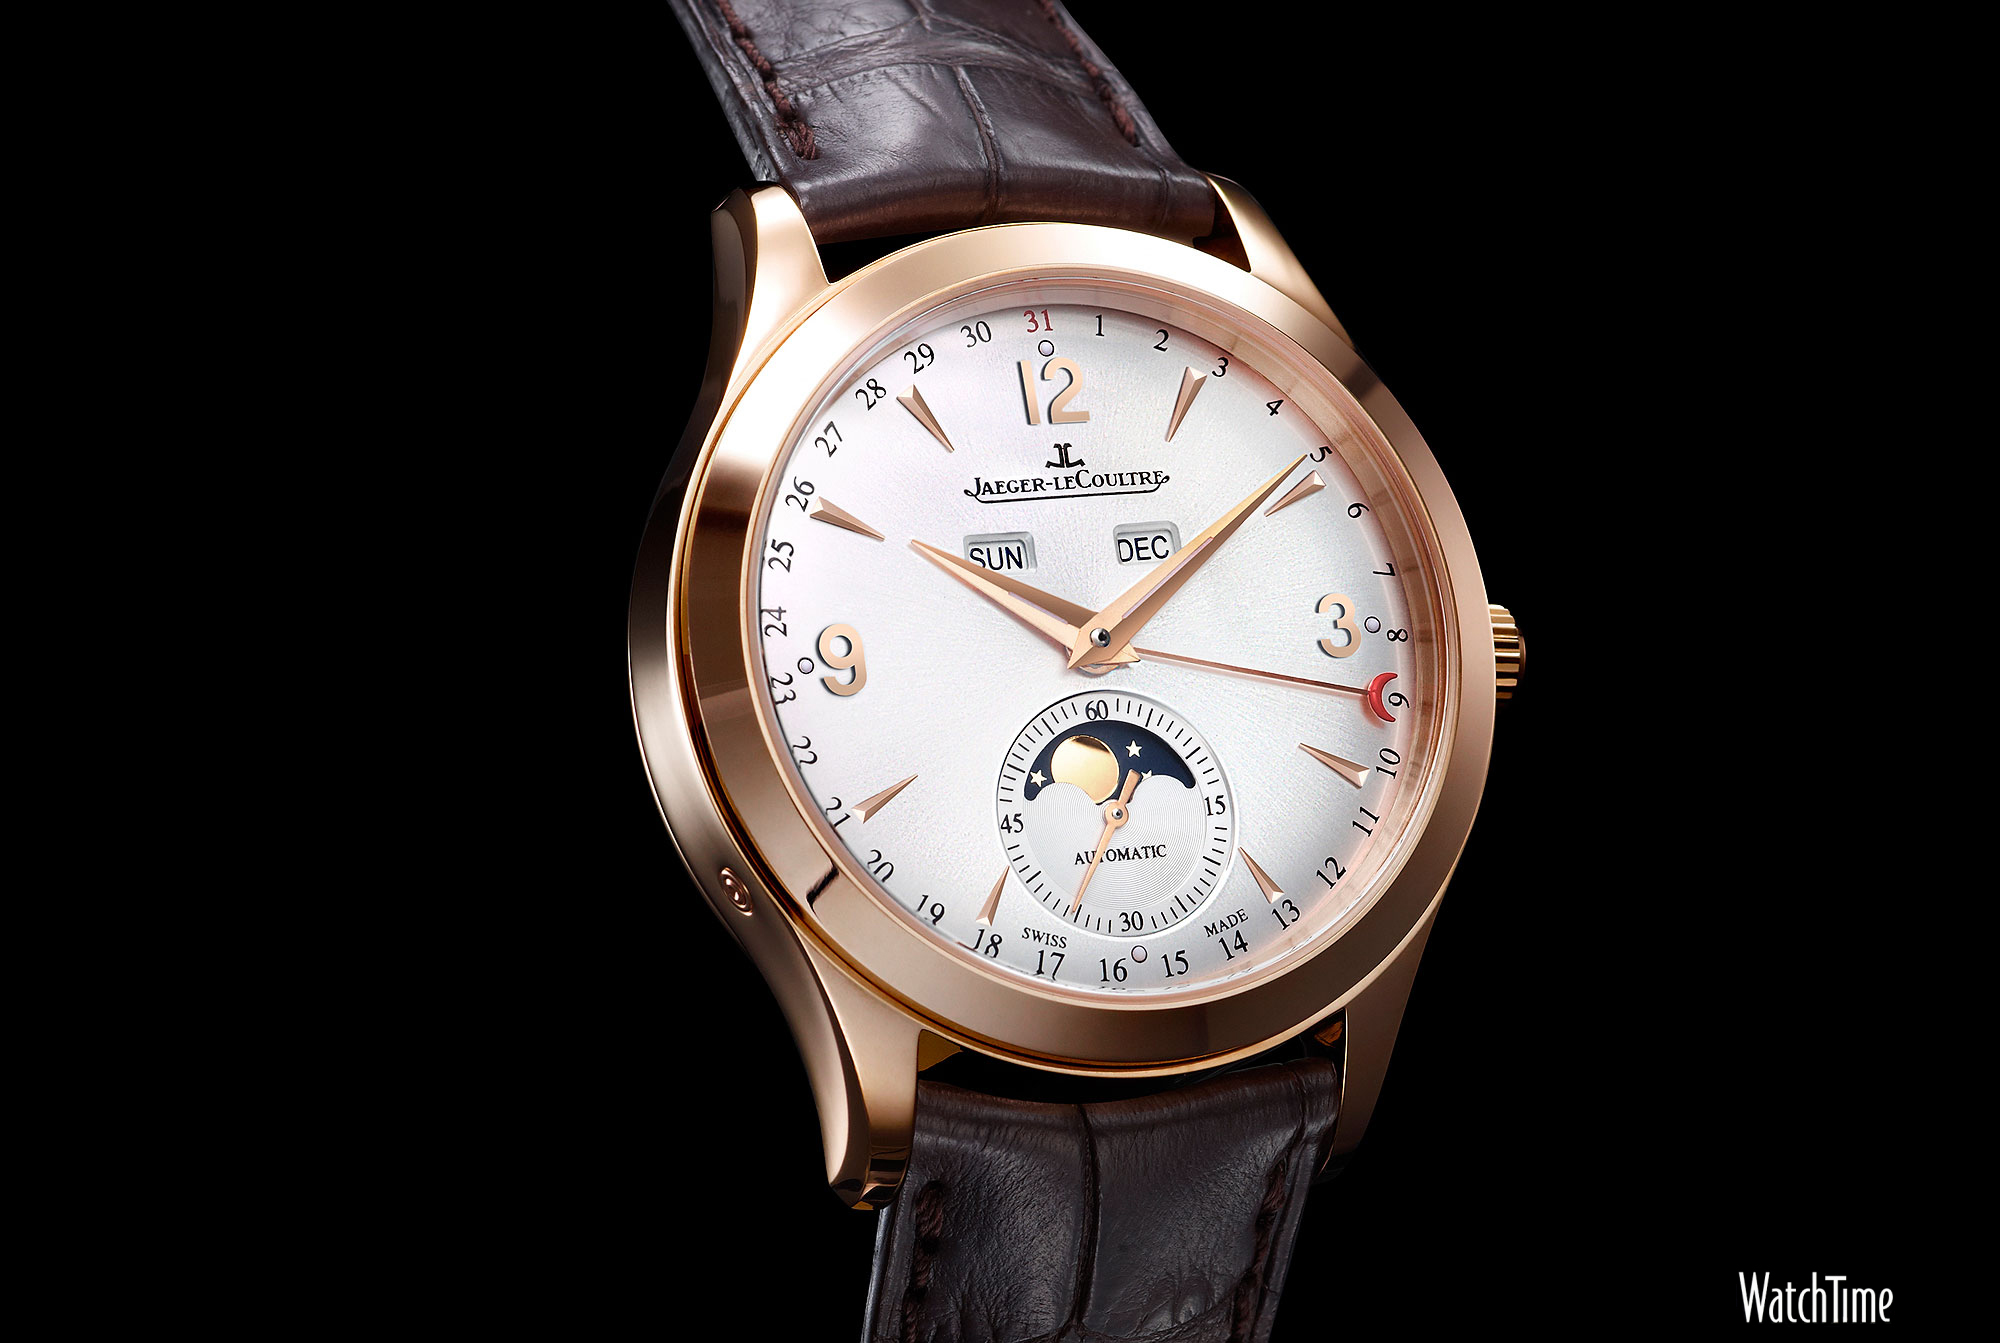 Watch Wallpaper: 7 Moon-Phase Timepieces › WatchTime - USA's No.1 ...